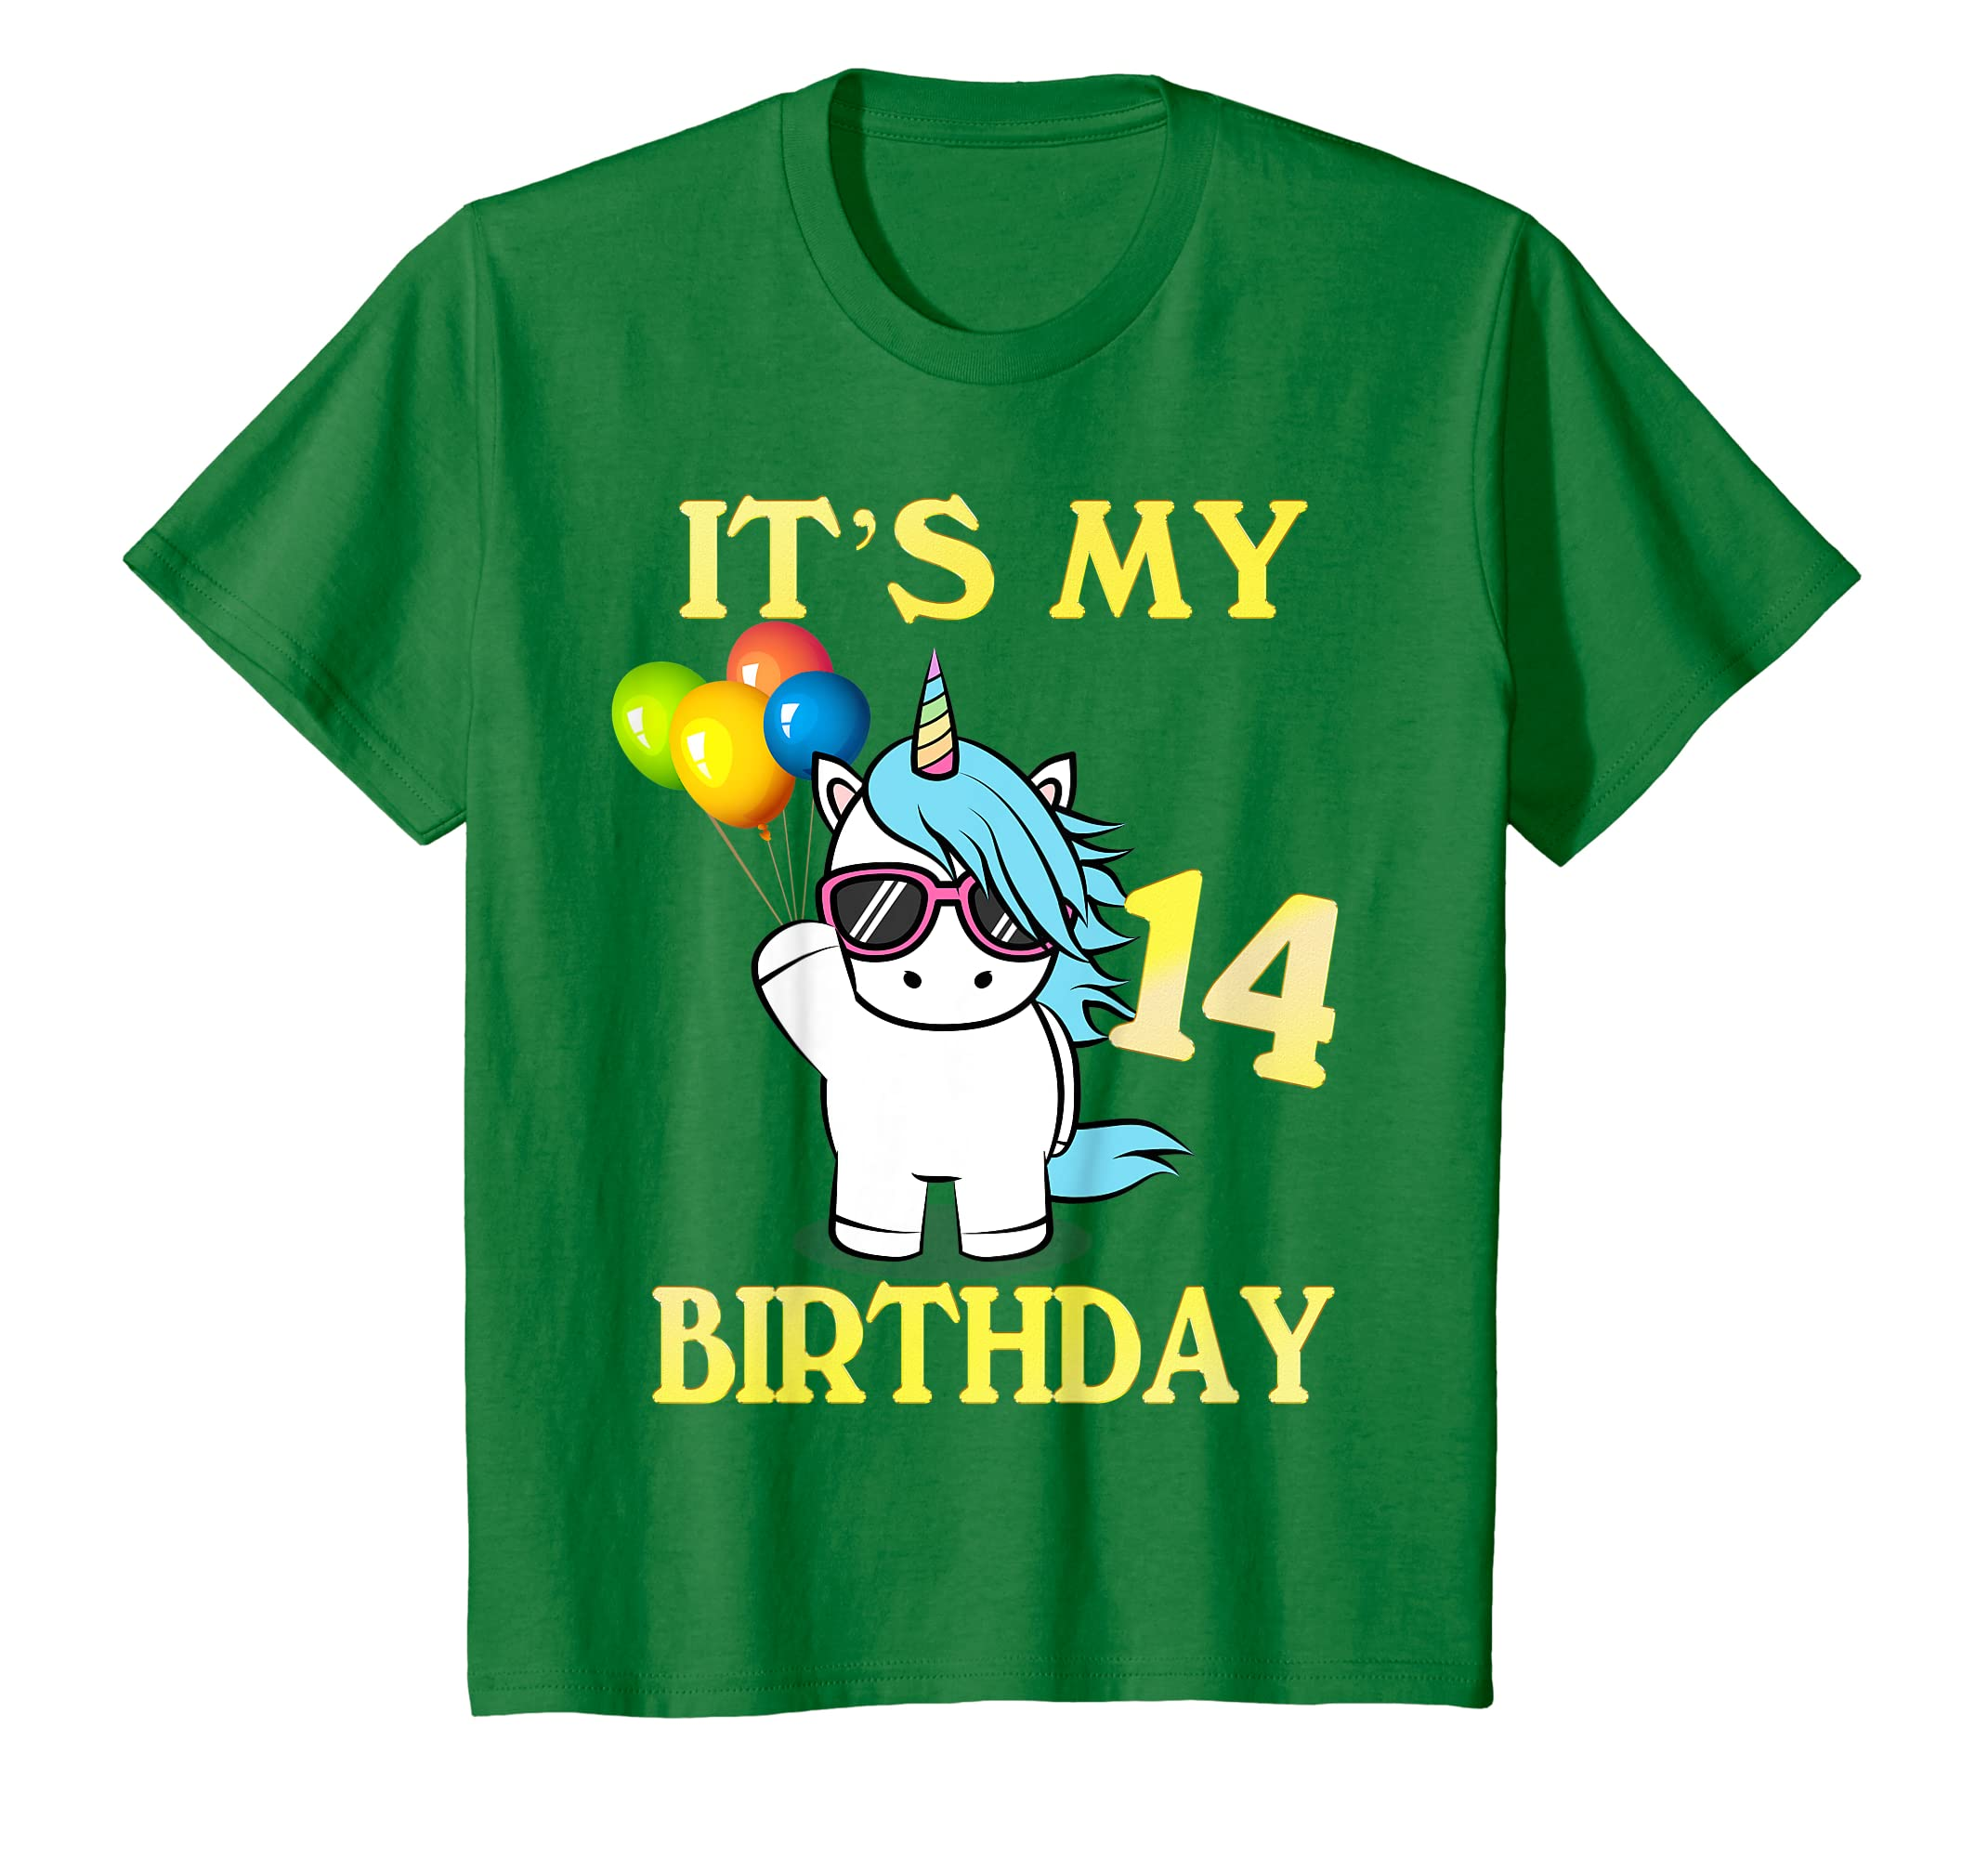 Amazon Kids Gift For 14 Years Old Shirt 14th Its My Birthday Unicorn Clothing